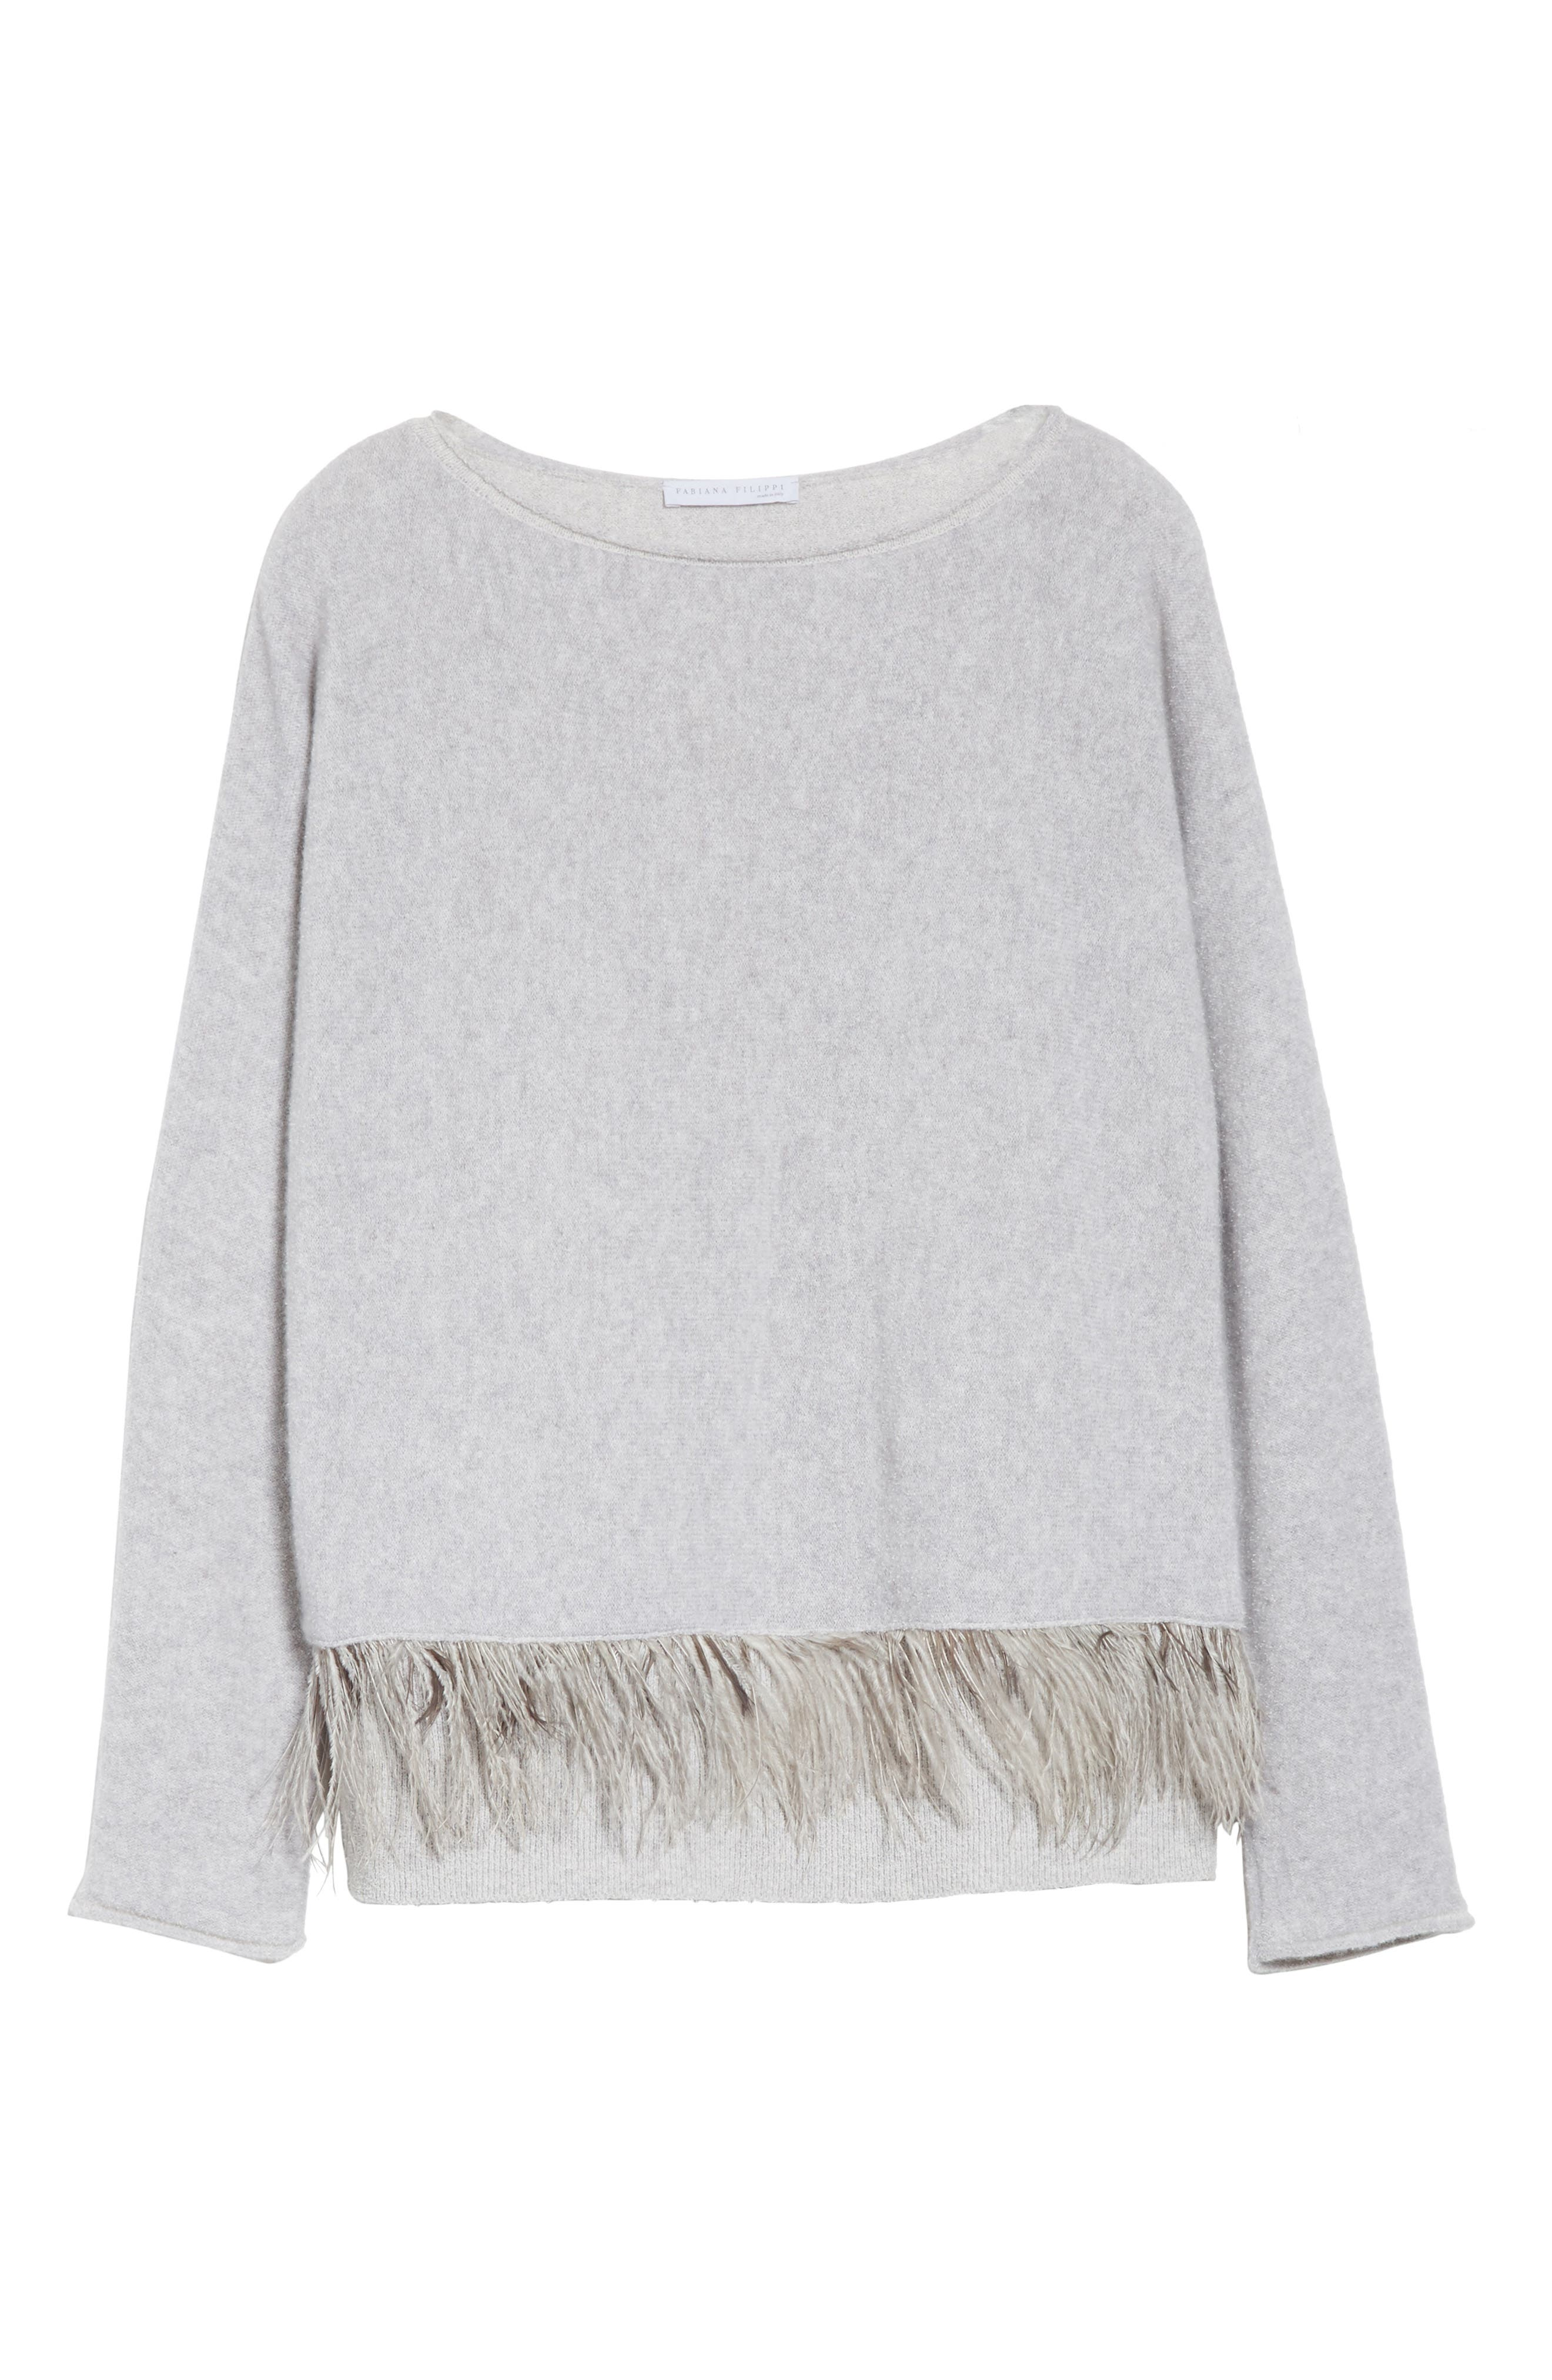 Cashmere Blend Sweater with Genuine Ostrich & Turkey Feather Trim,                             Alternate thumbnail 7, color,                             Grey